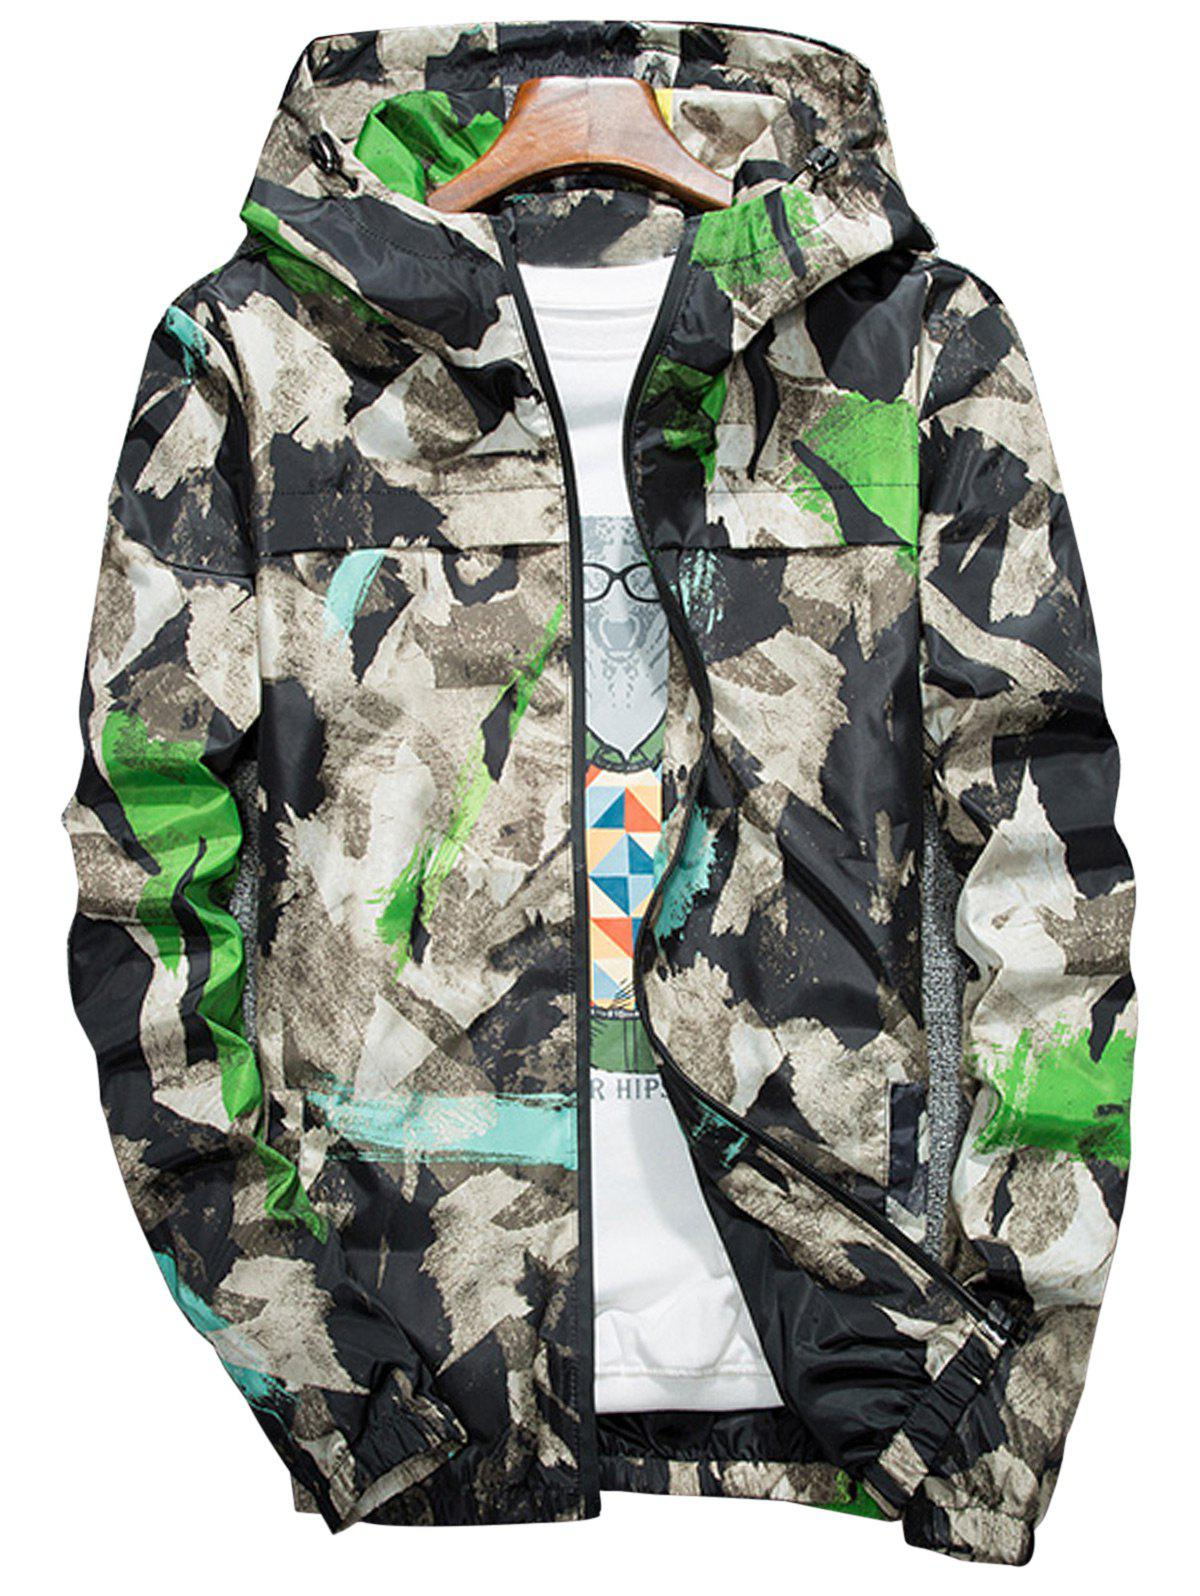 Splatter Paint Camouflage Lightweight Jacket